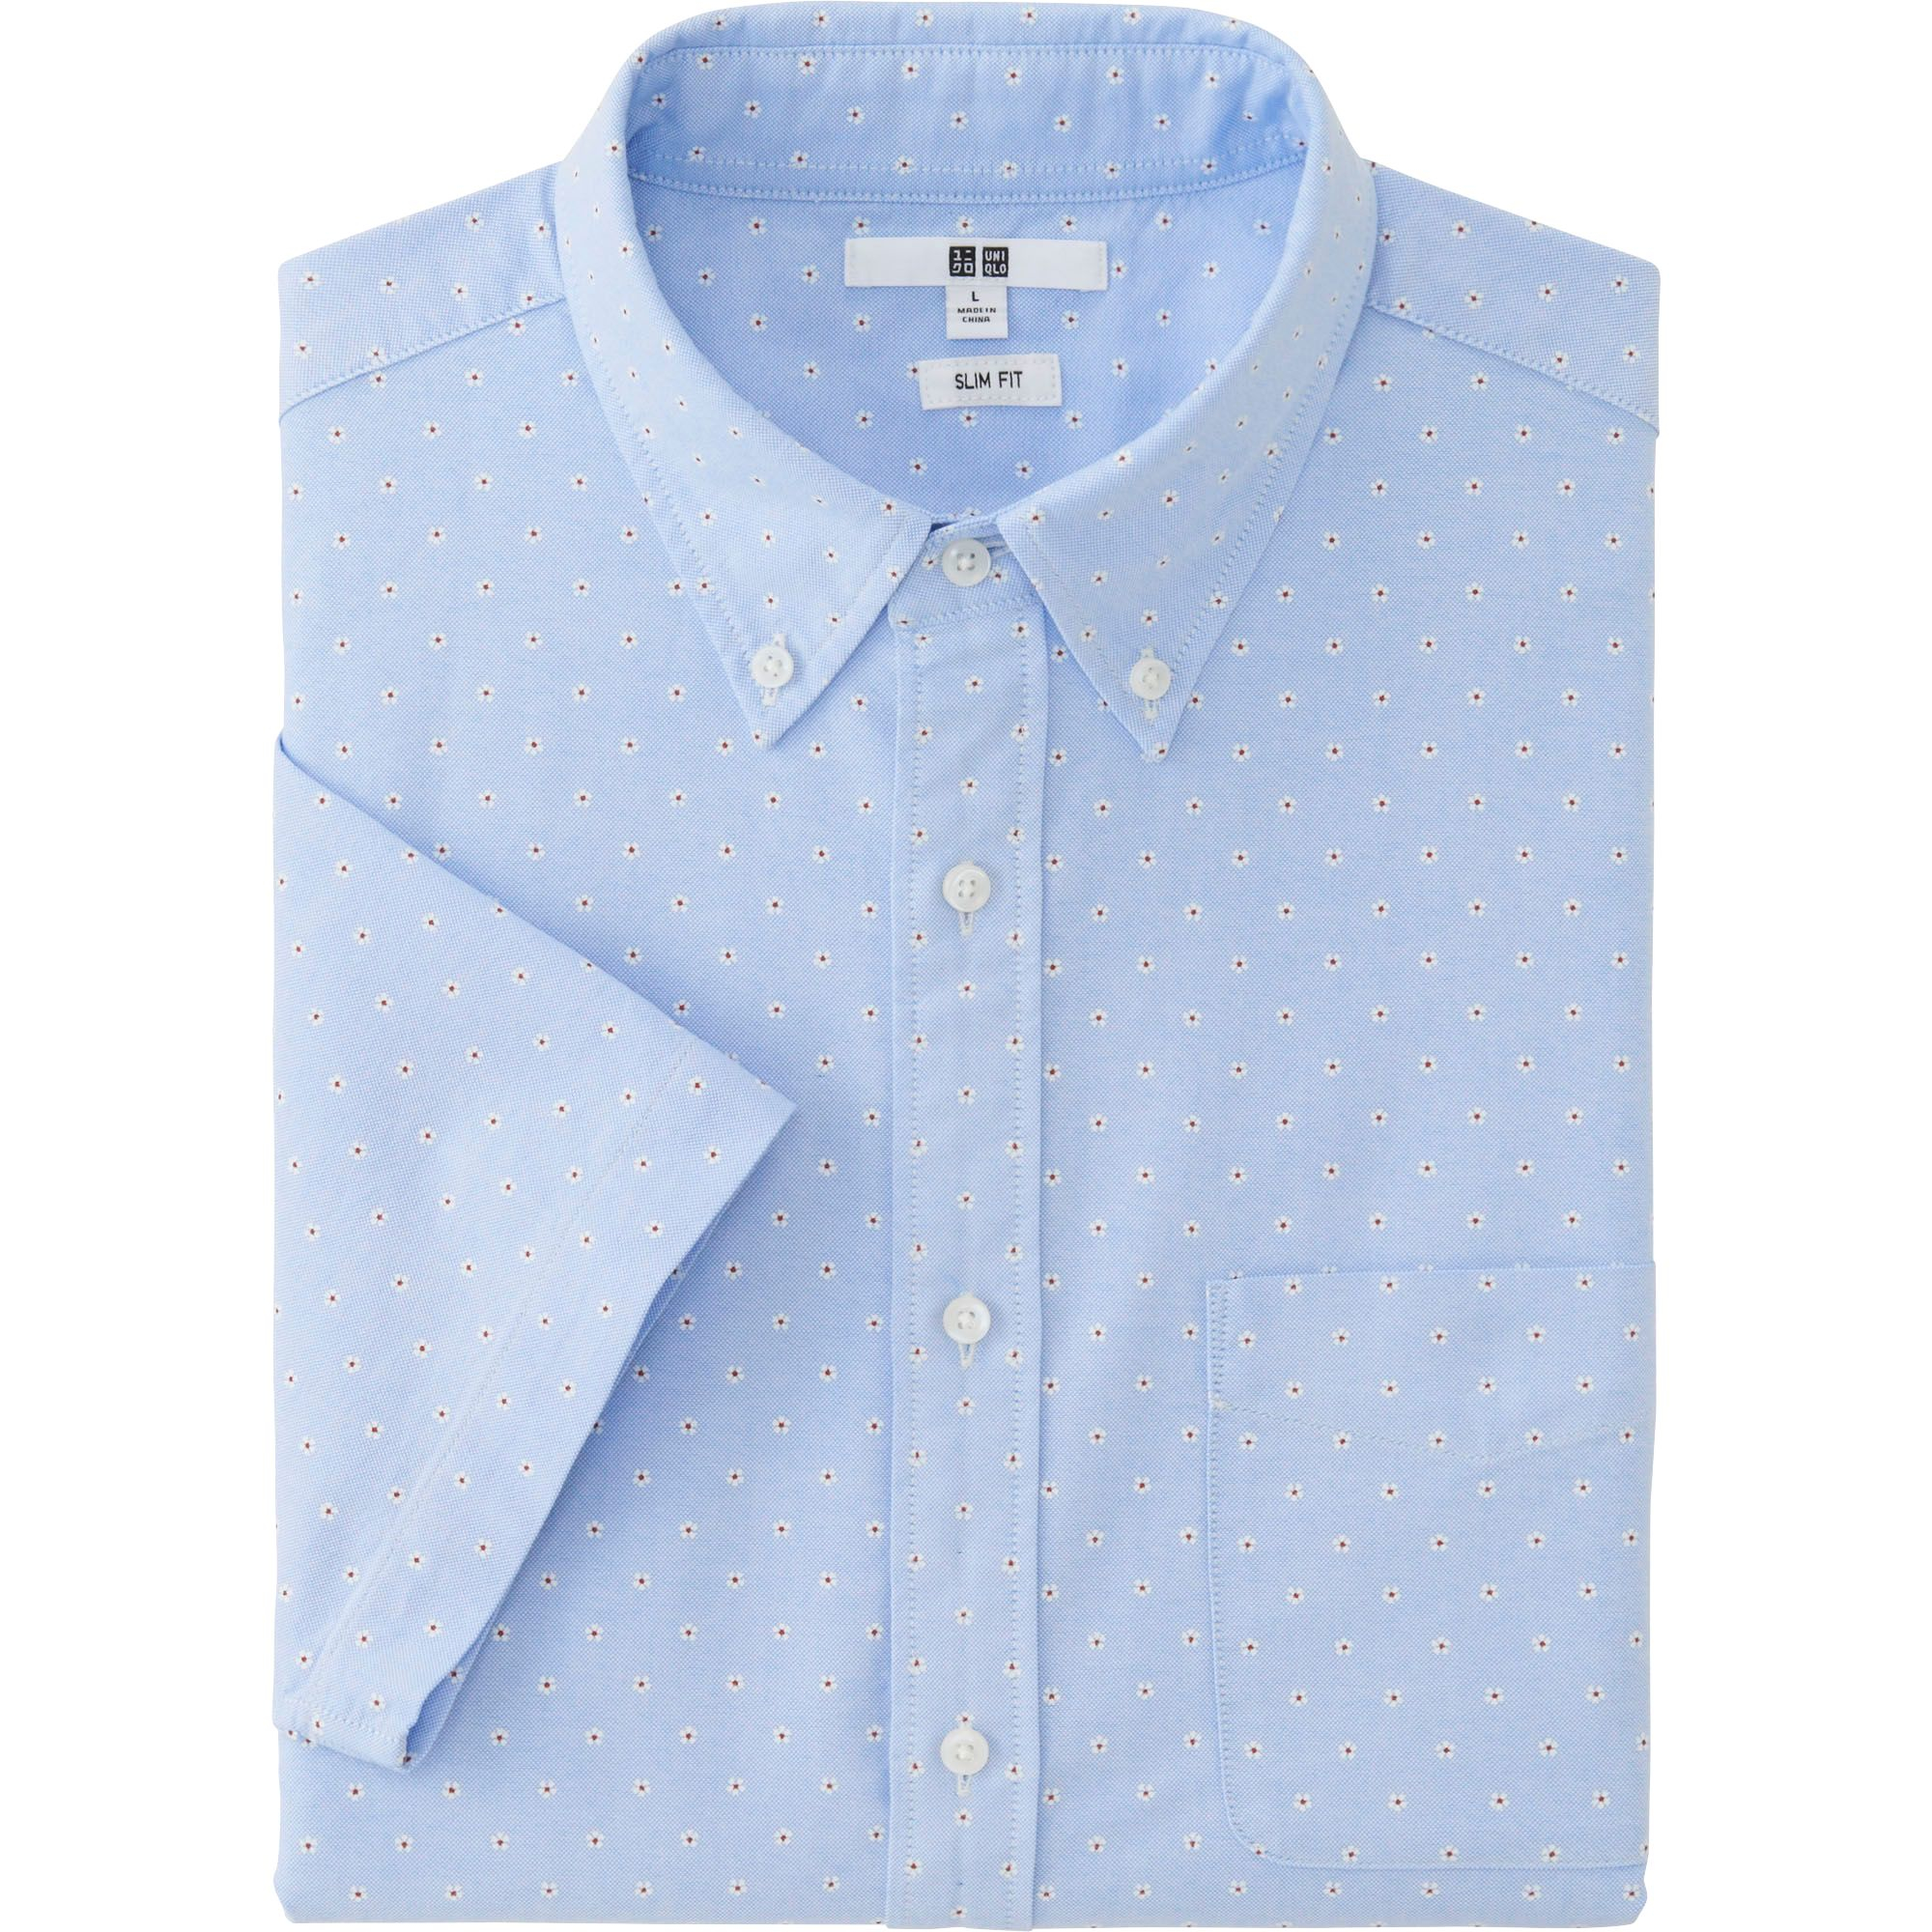 Uniqlo men 39 s oxford slim fit short sleeve printed shirt in for T shirt printing oxford